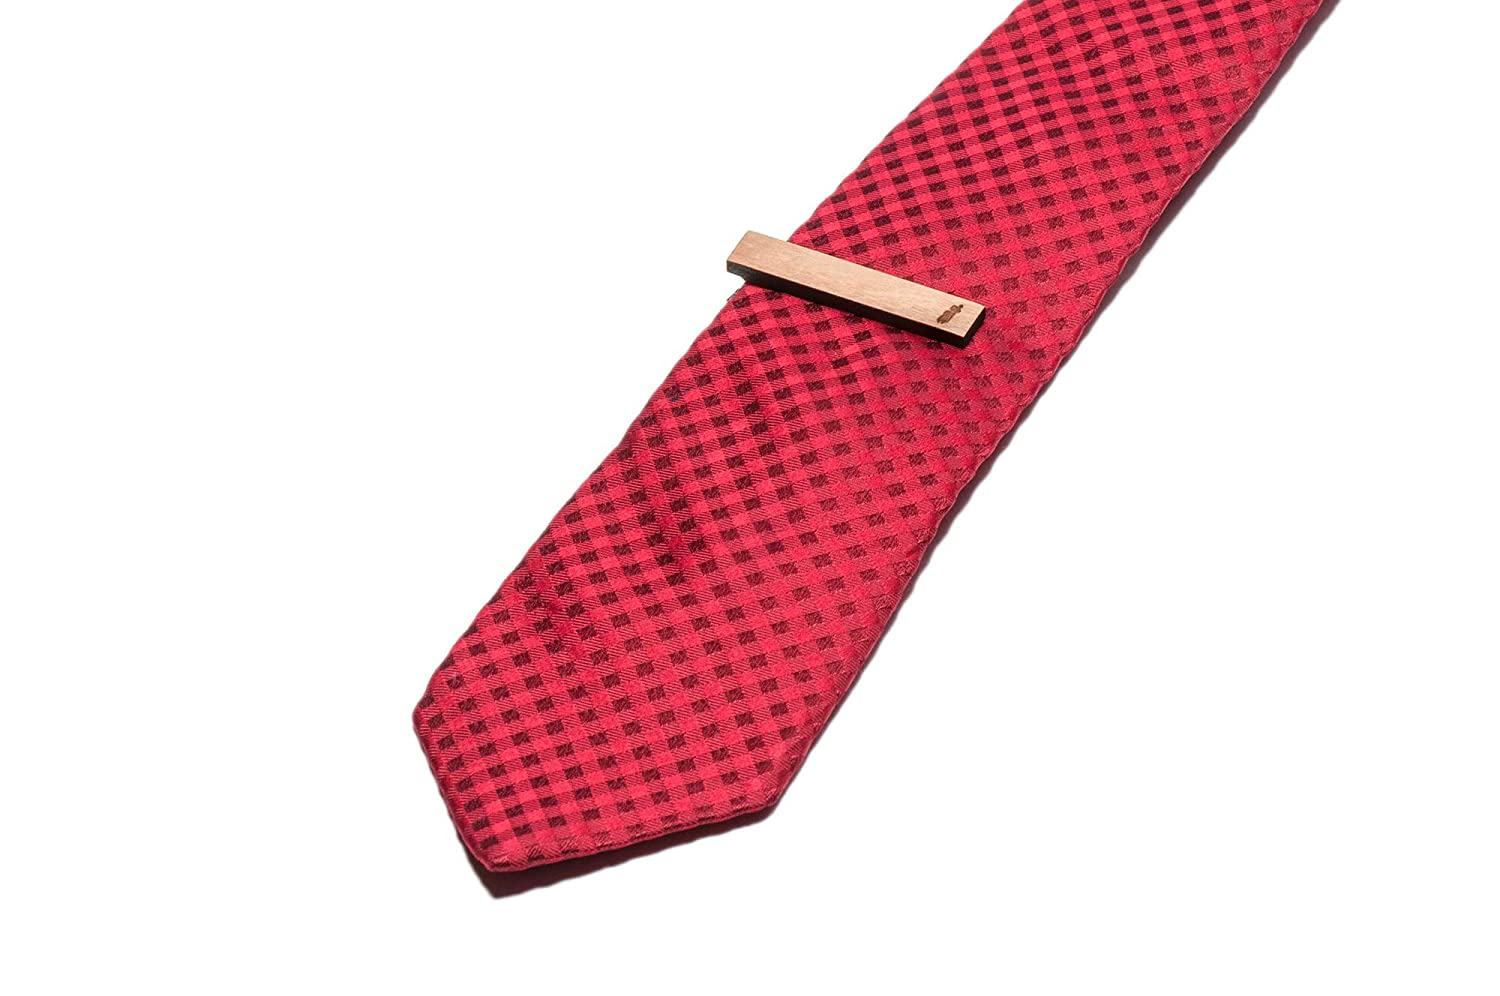 Wooden Accessories Company Wooden Tie Clips with Laser Engraved Chiropractor Design Cherry Wood Tie Bar Engraved in The USA